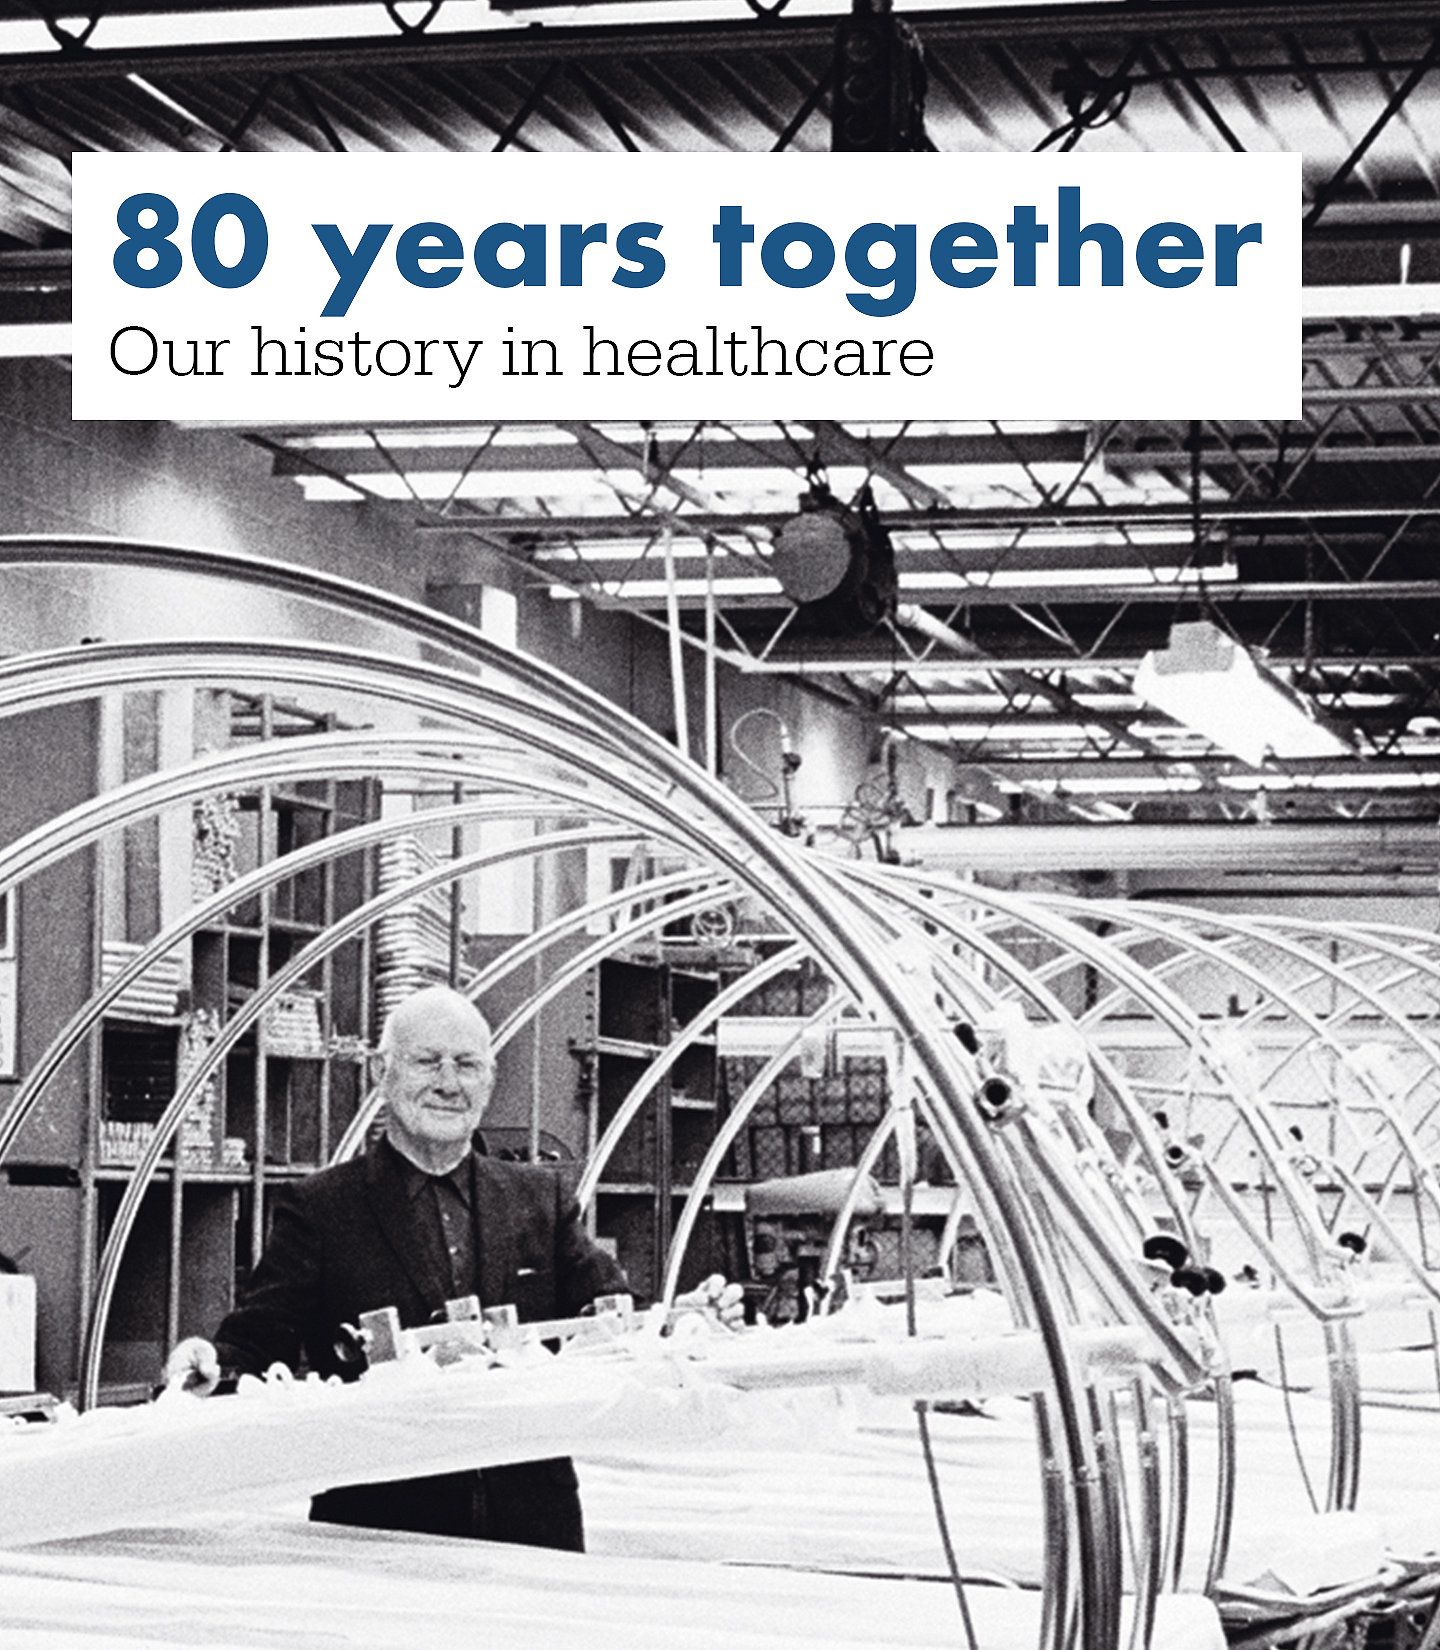 80 years together; Our history in healthcare